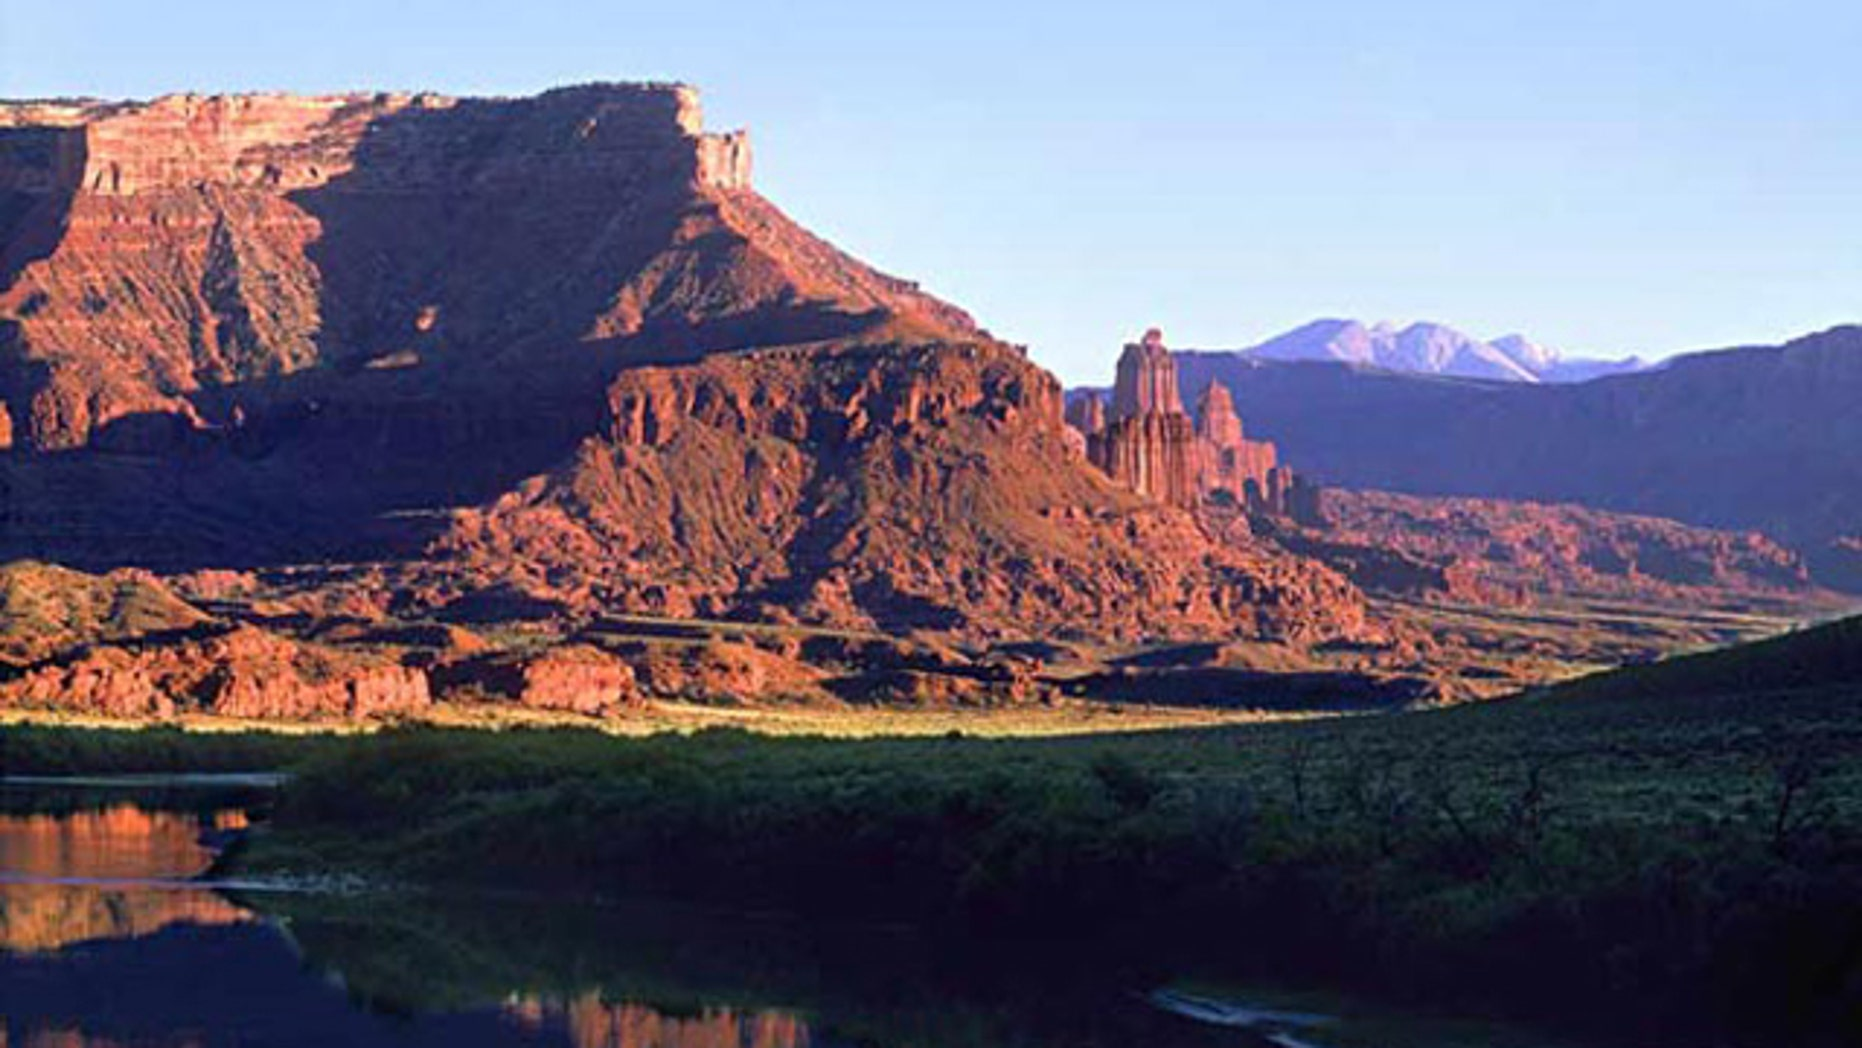 Shown here is a section of the Colorado River in Utah.